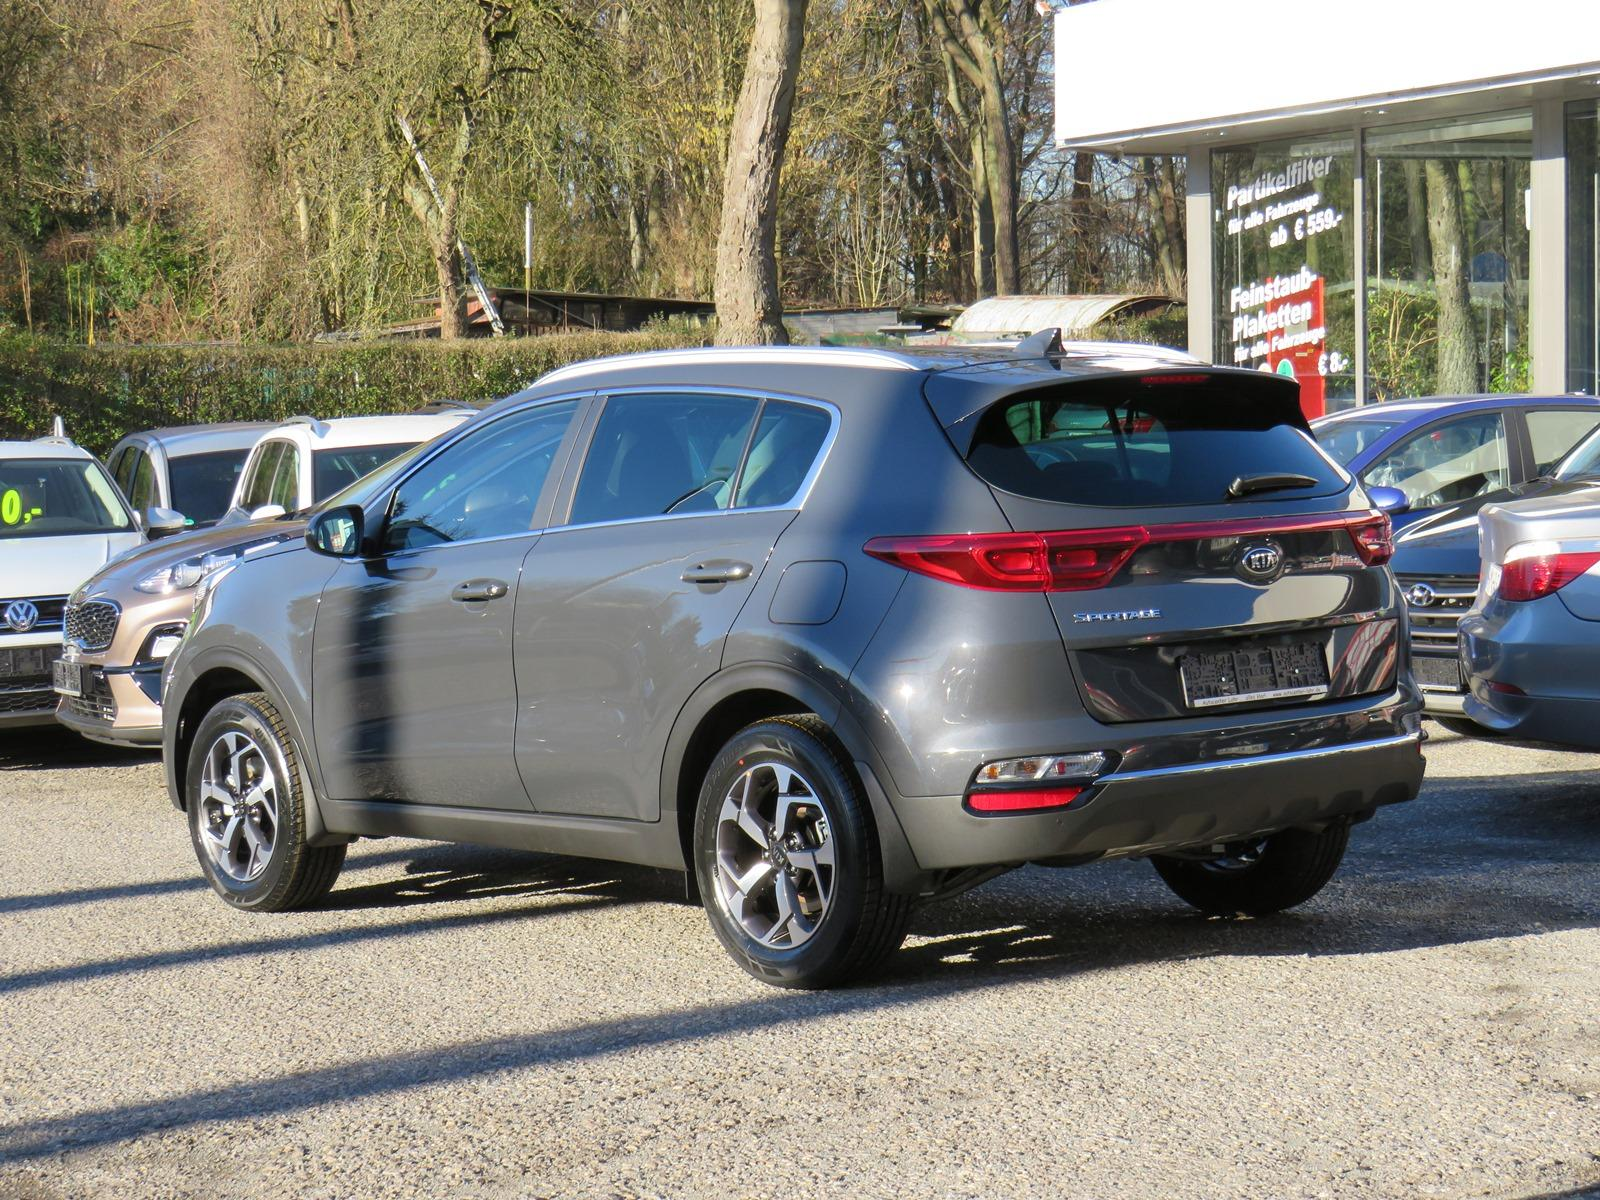 kia sportage 1 6 t gdi awd facelift gt line panoramadach. Black Bedroom Furniture Sets. Home Design Ideas